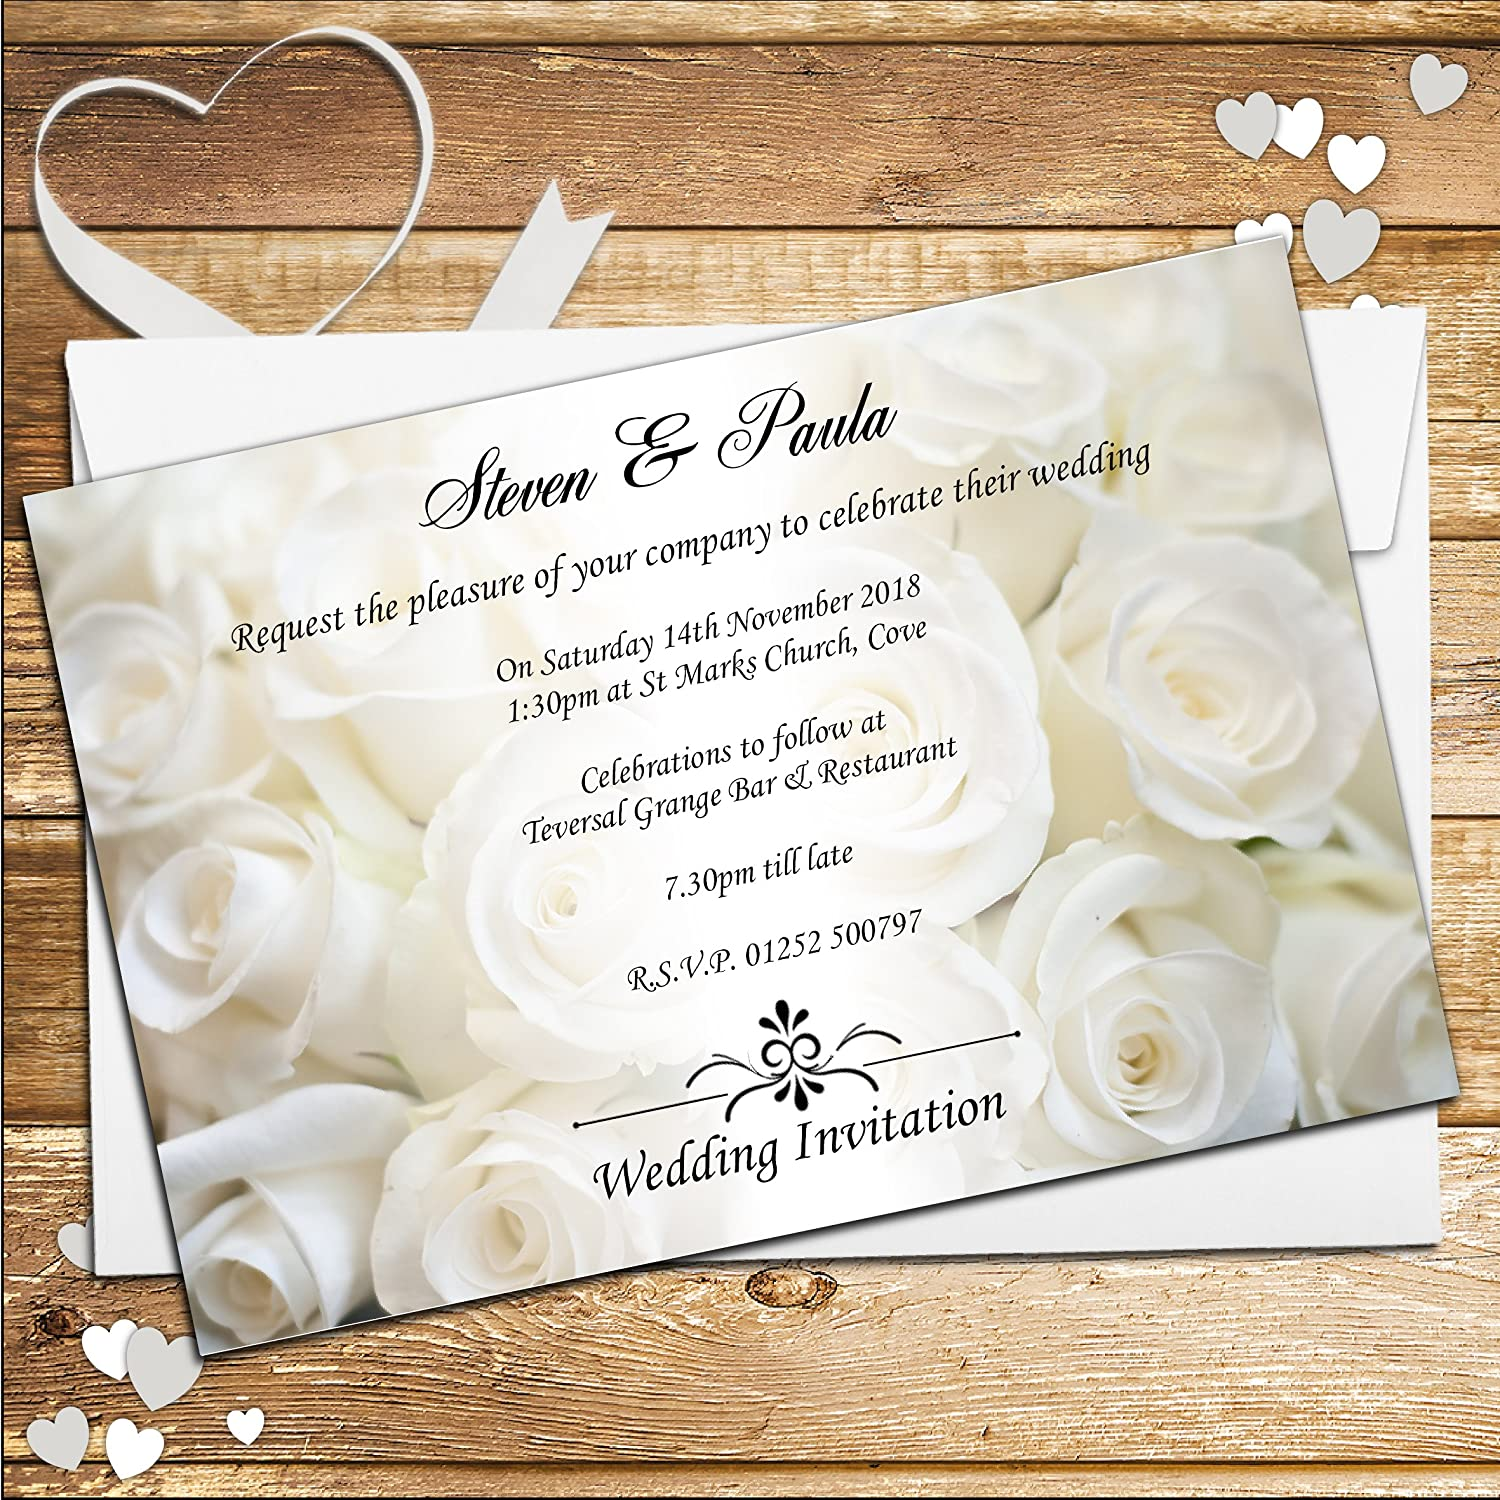 10 Personalised White Rose Wedding Invitations N50: Amazon.co.uk ...